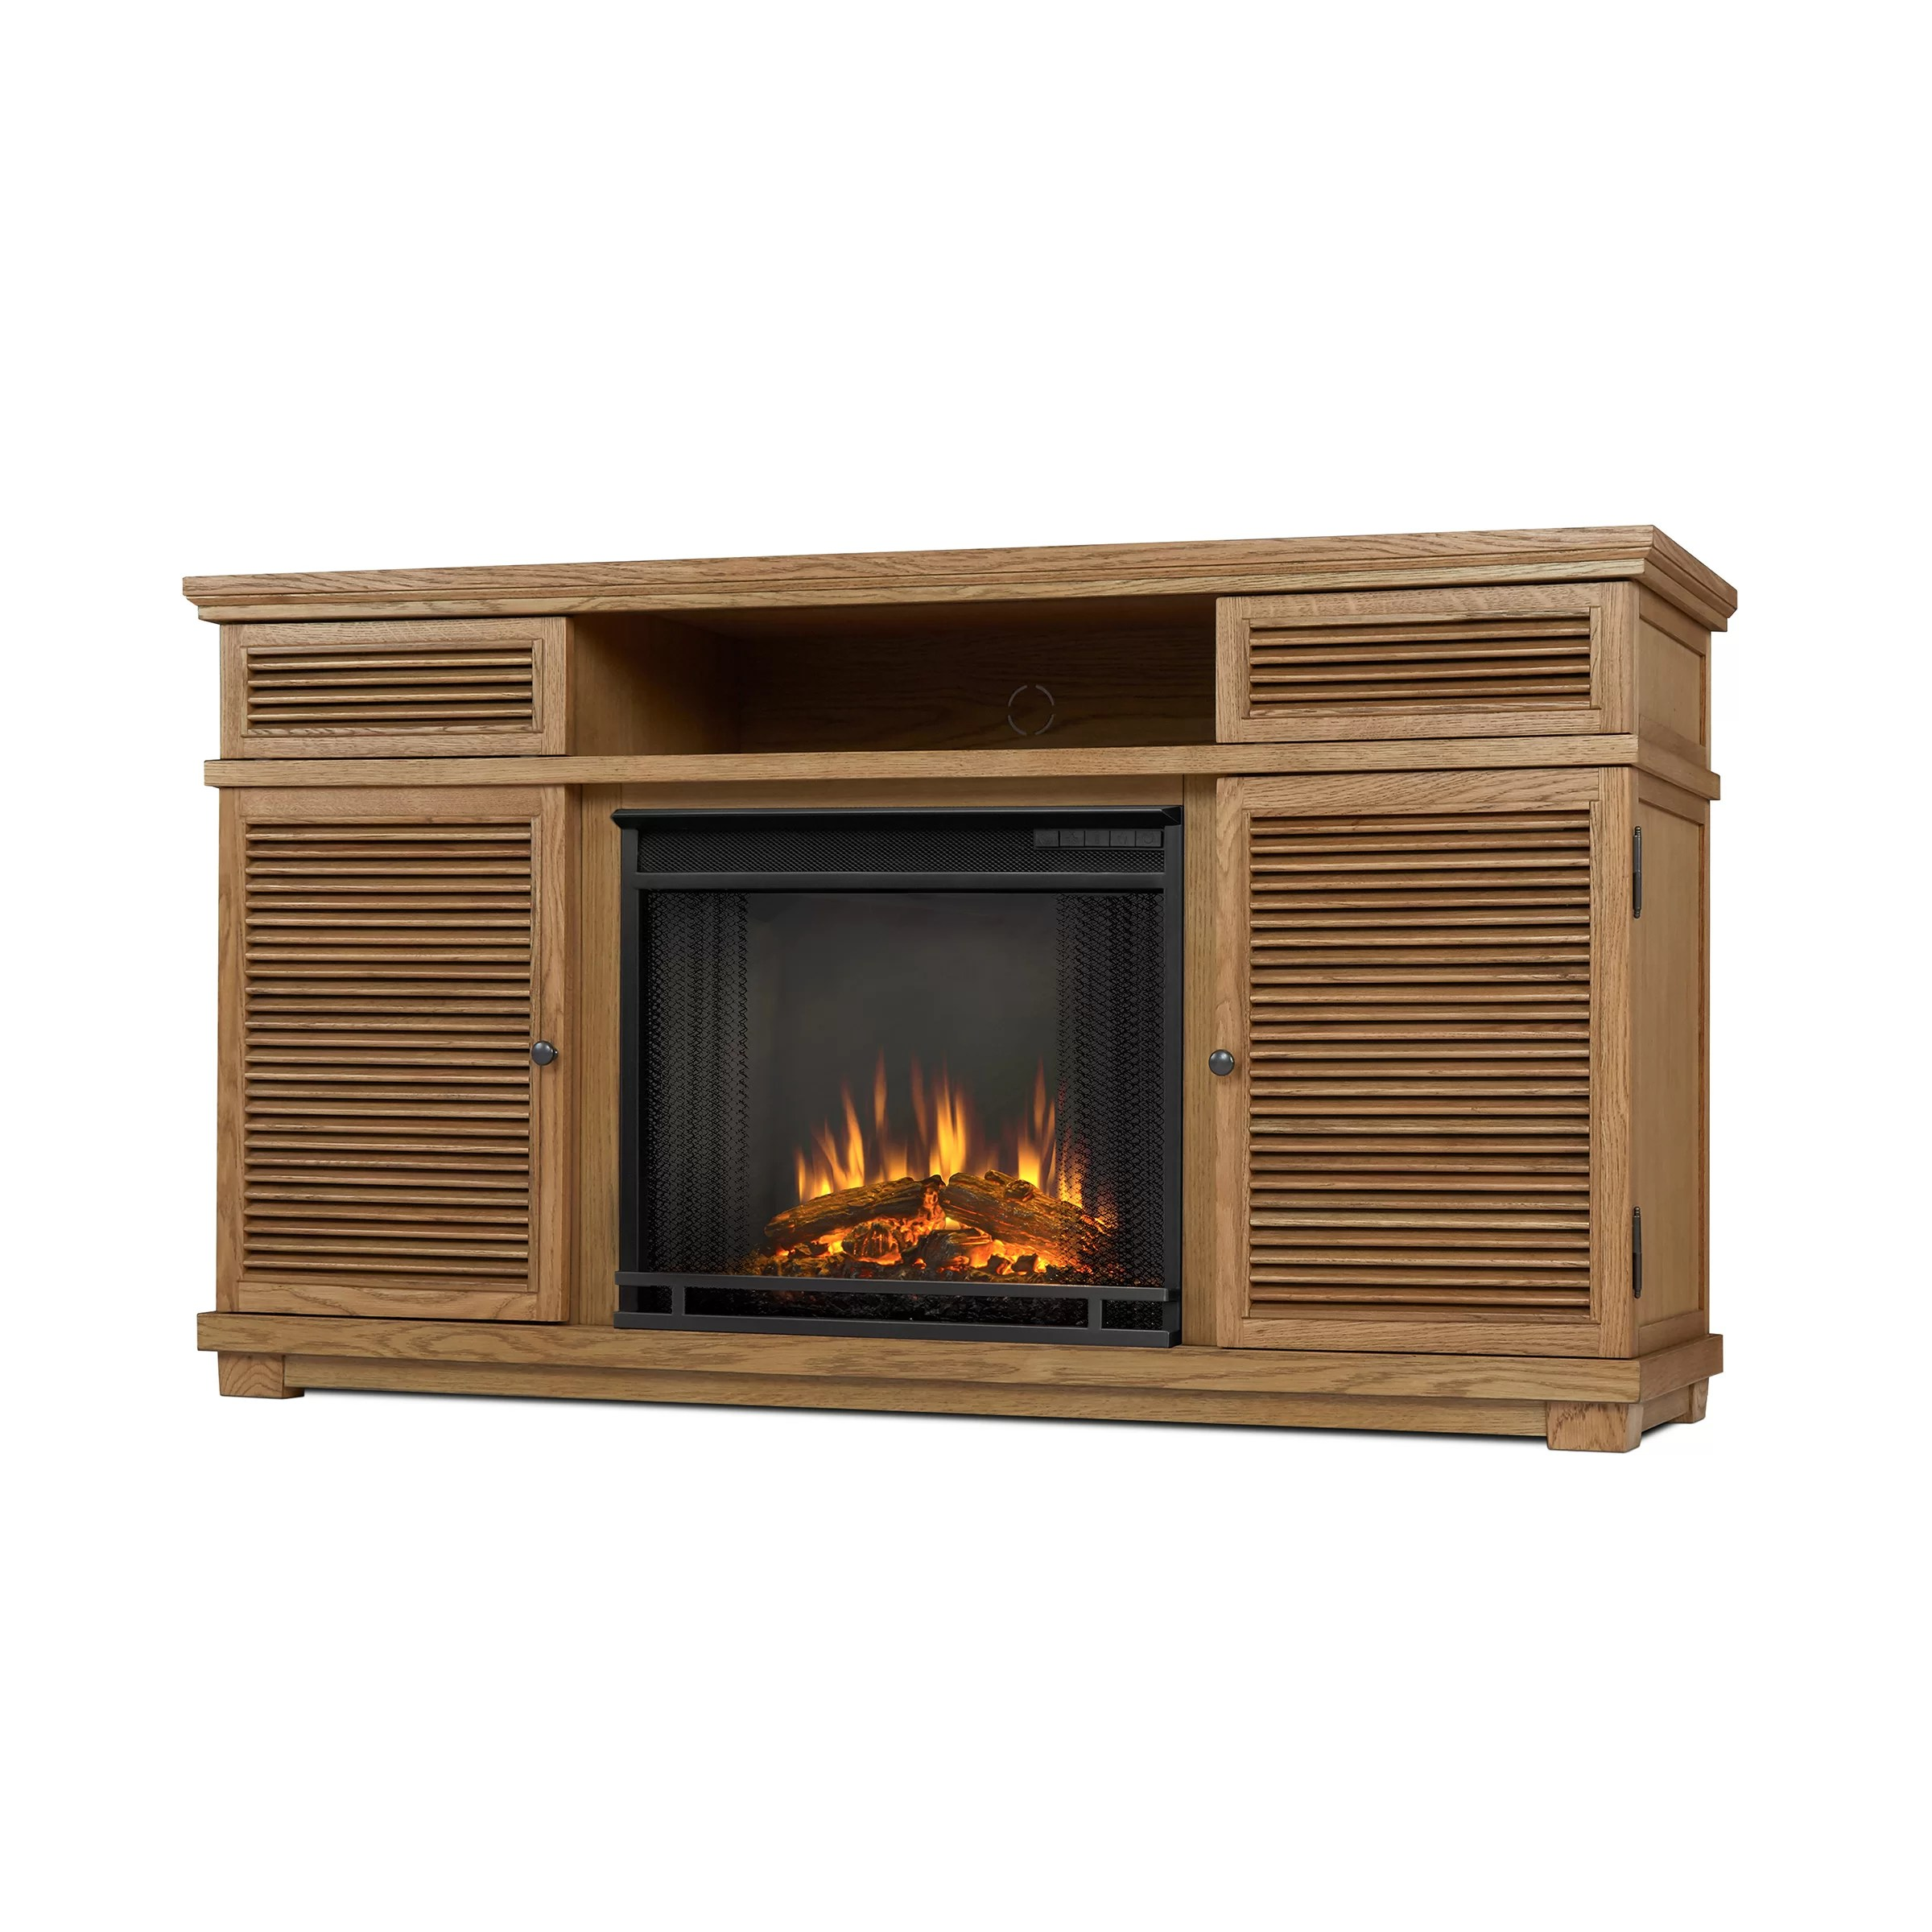 Real Flame Cavallo Electric Fireplace